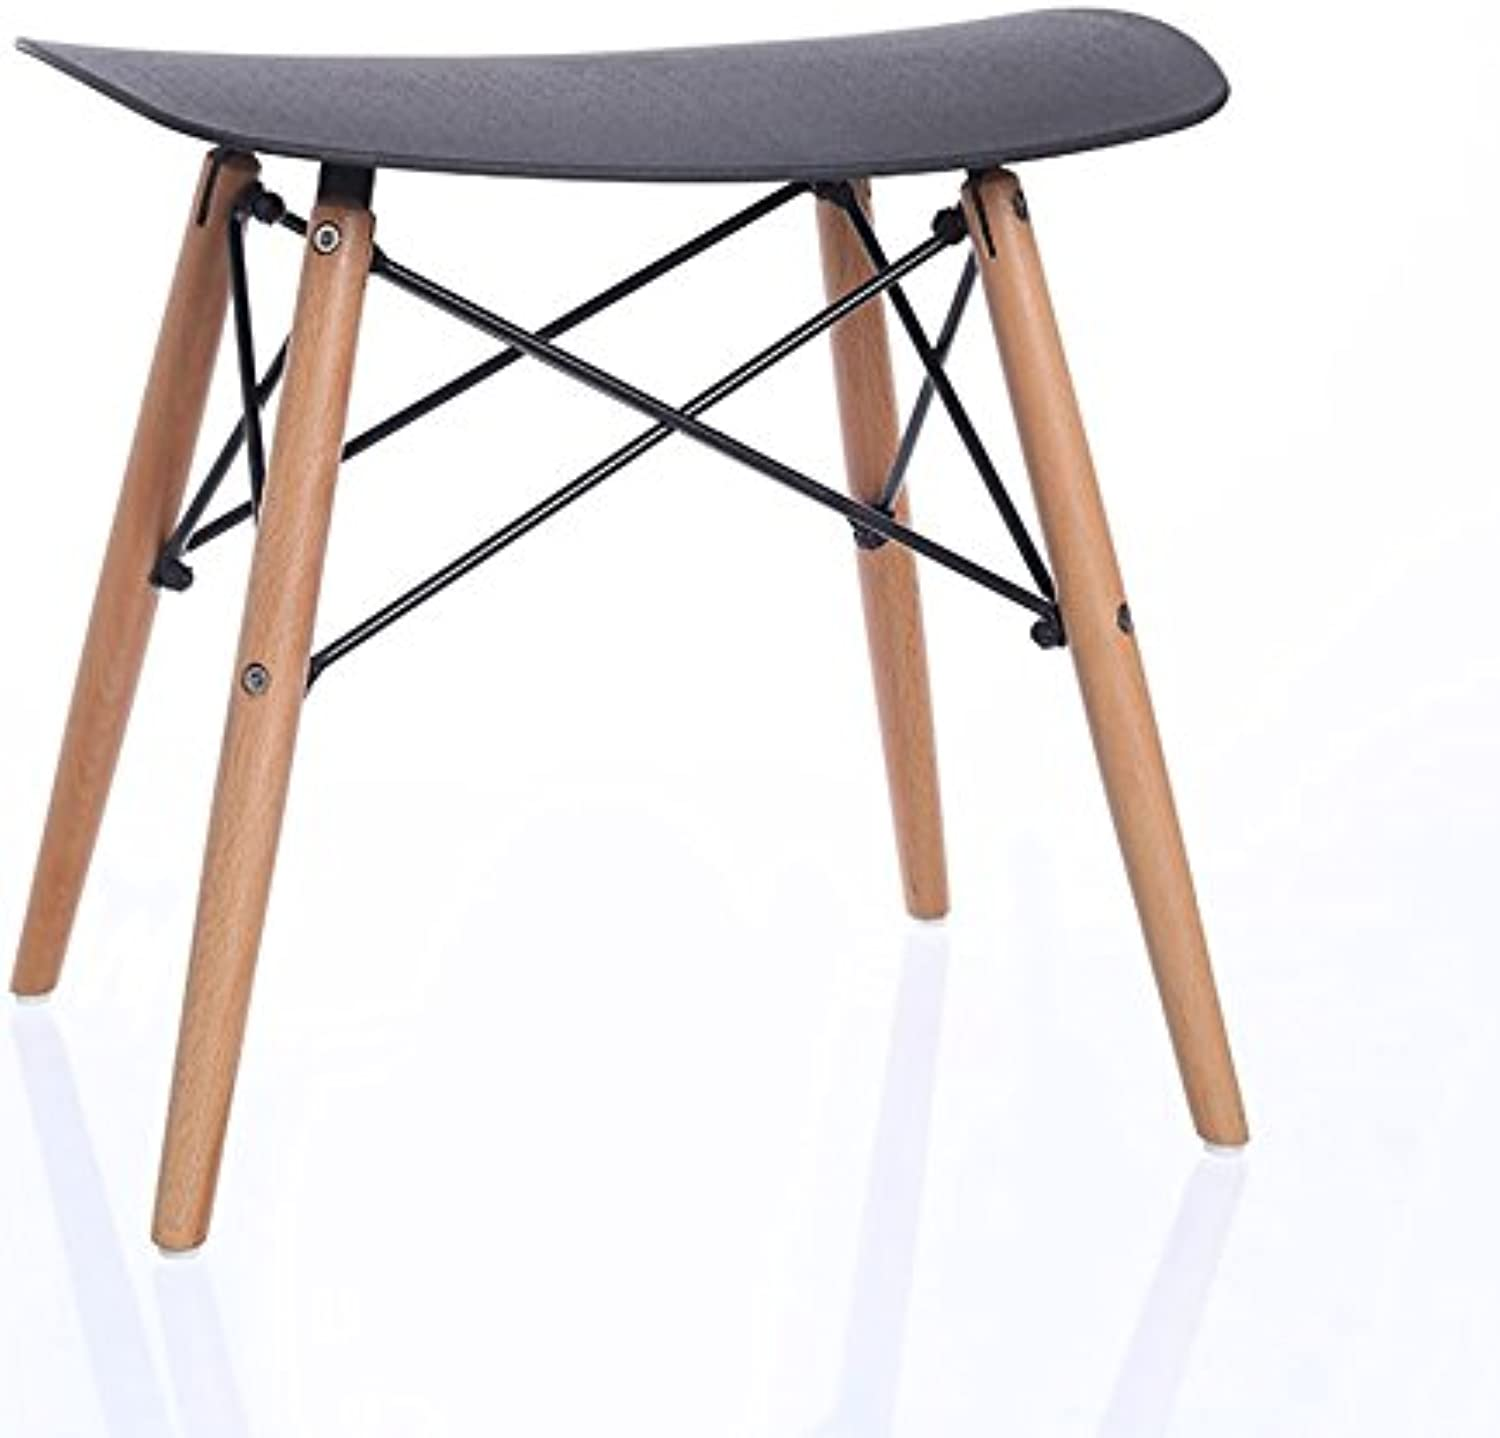 ZfgG Seat Creative Modern Simple Dining Stool Vanity Stool Make-up Stool Bench Stool Bench Size (35  48  47.5 cm),Applicable Bar Restaurant Counter (color   B)